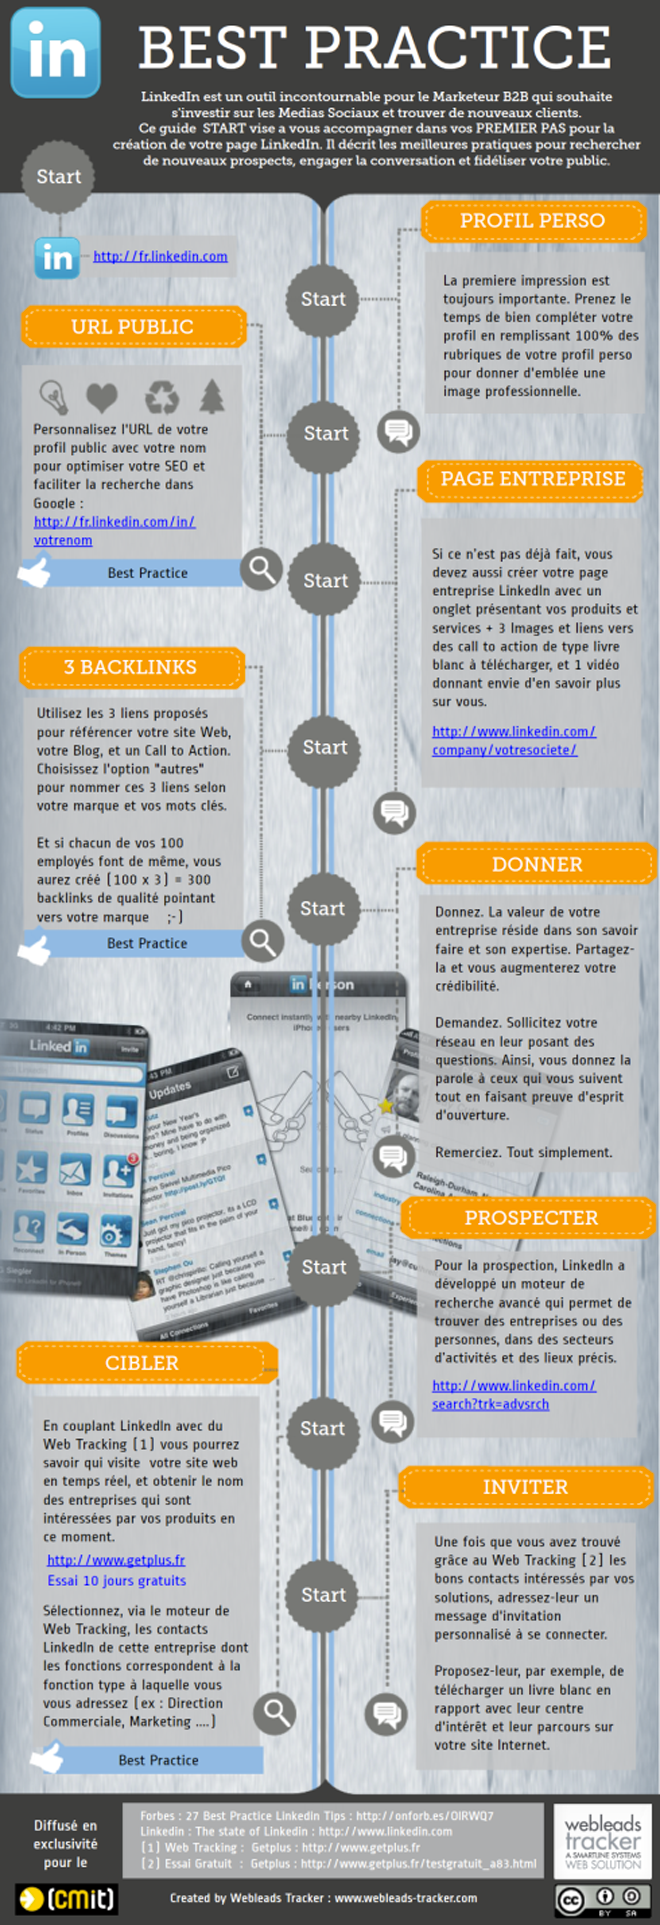 marketing social et prospection sur linkedin en b2b